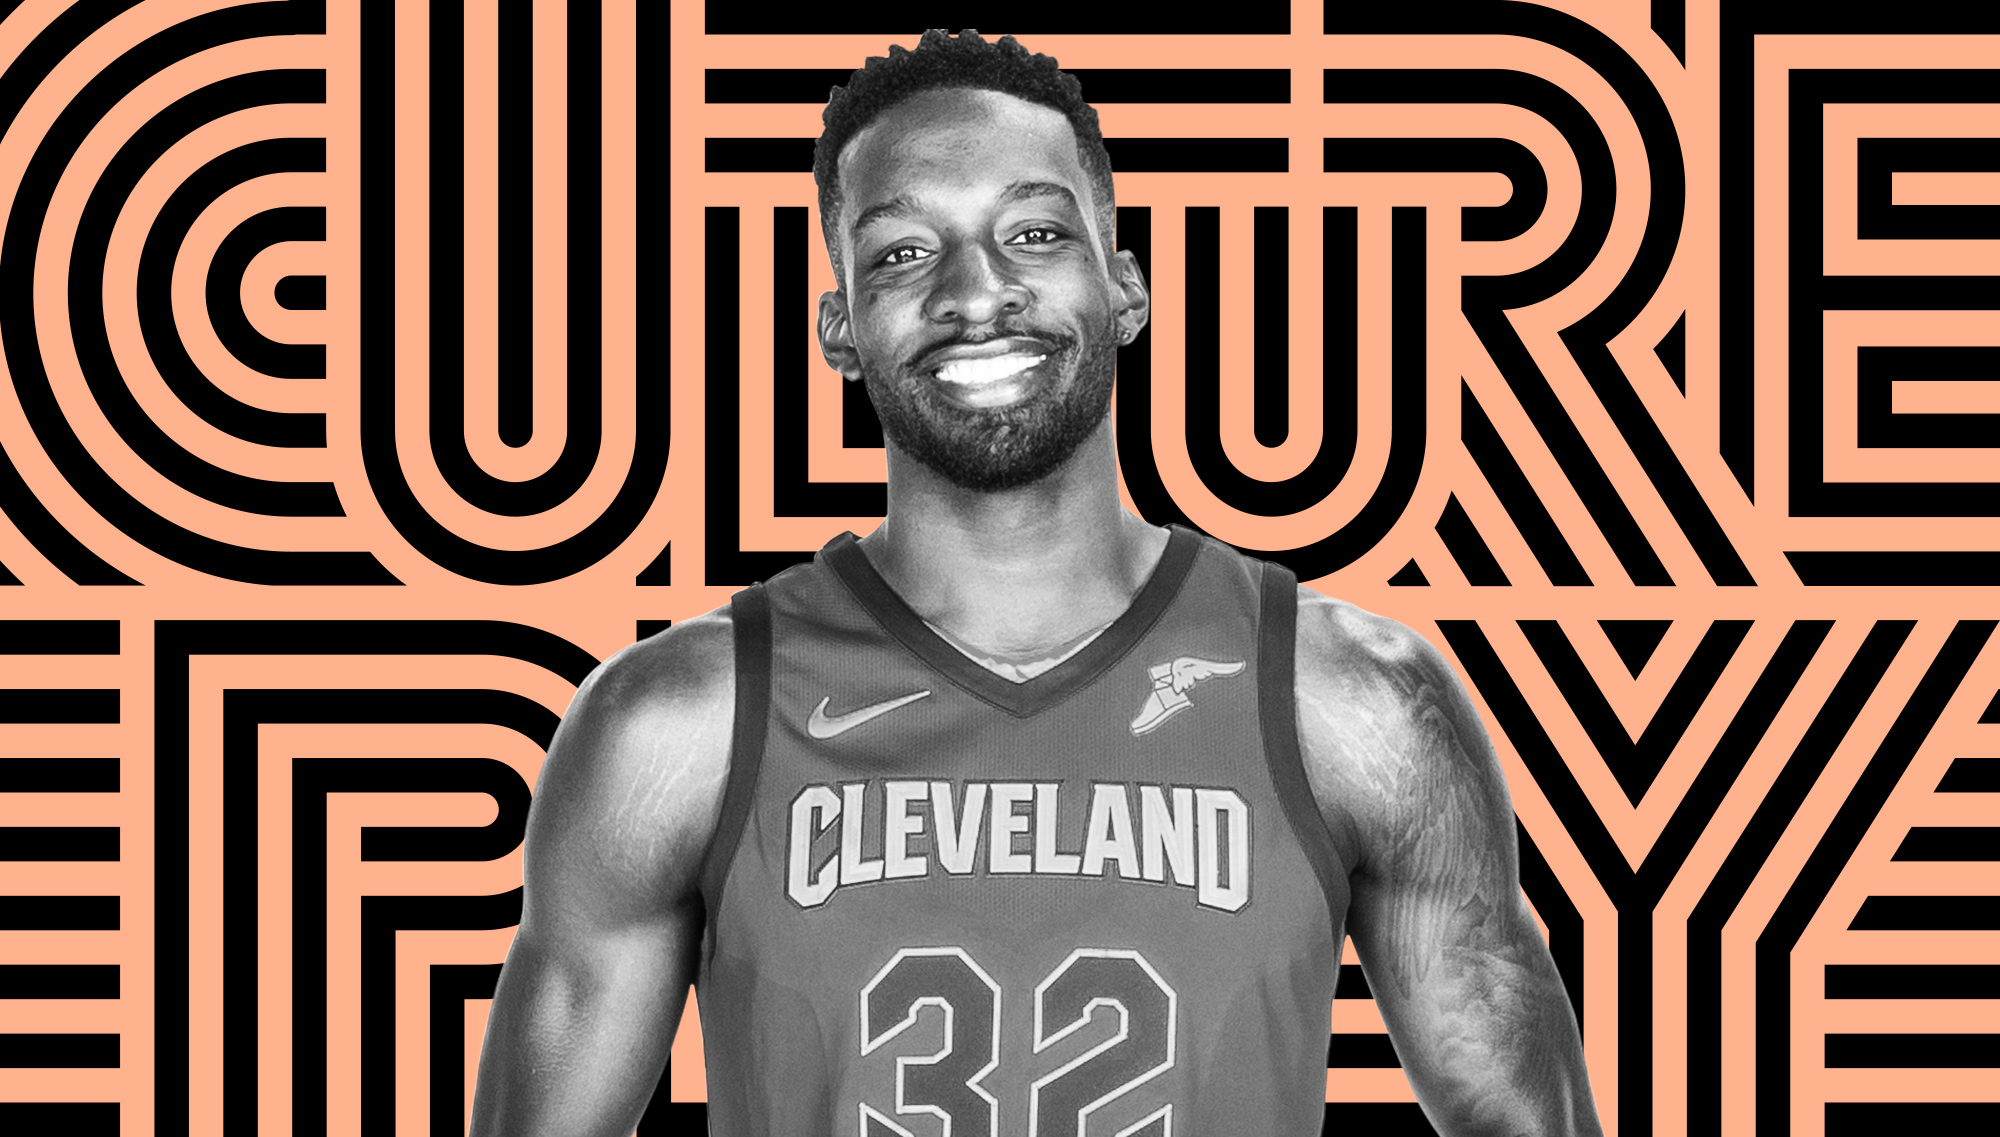 ac73d9d754f4e Jeff Green is flourishing as a Cleveland Cavalier